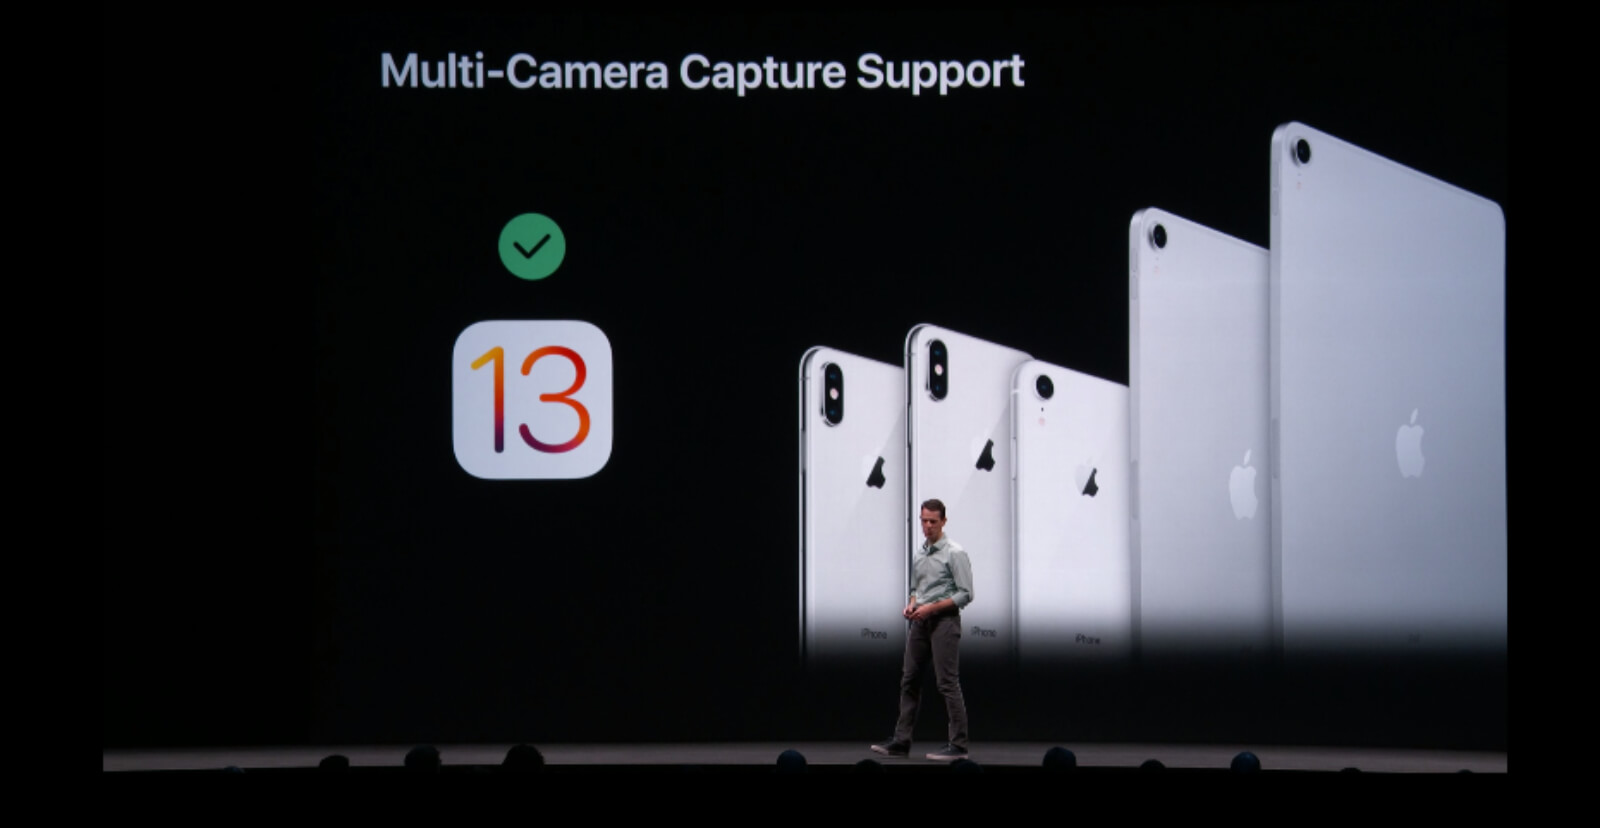 iOS 13 is bringing multi-cam support for simultaneous media capture